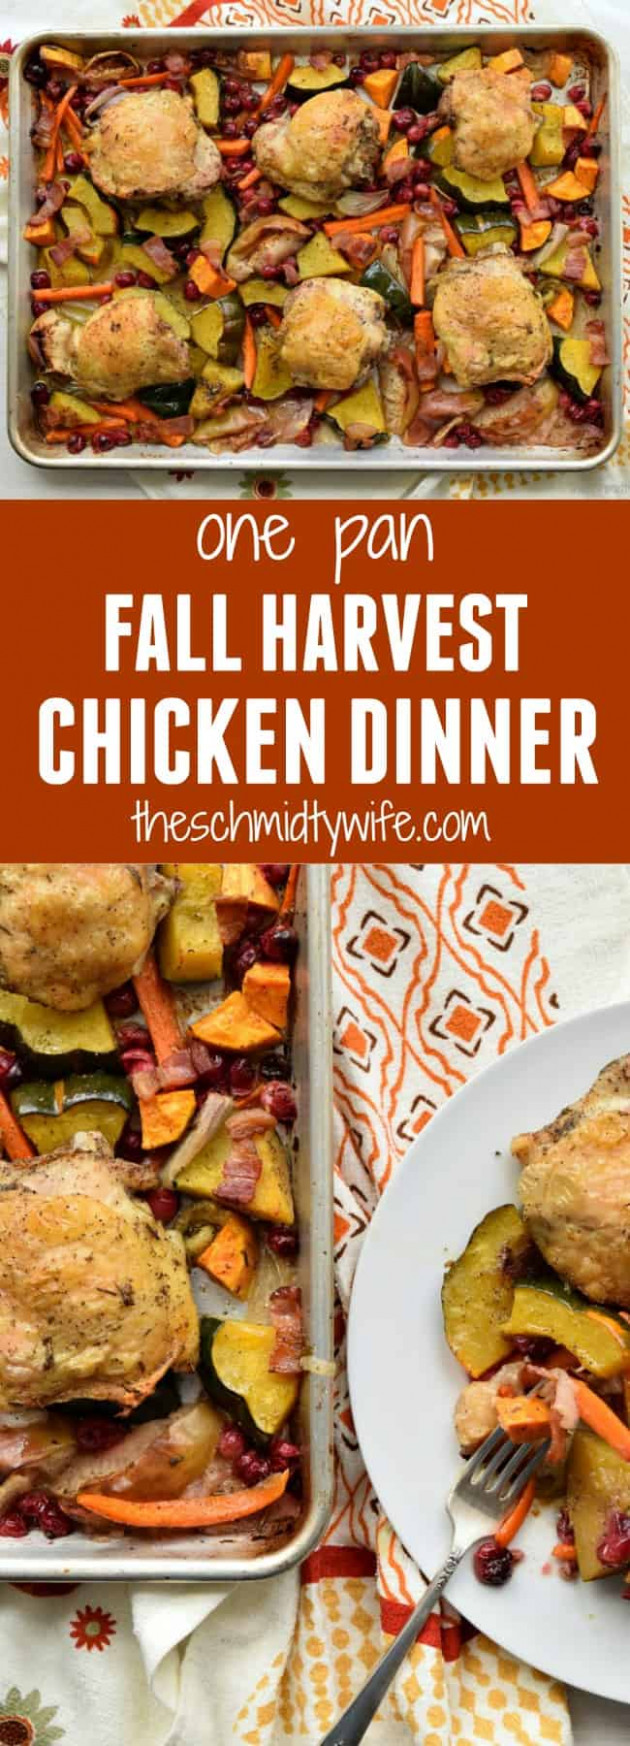 One Pan Fall Harvest Chicken Dinner - recipes dinner fall